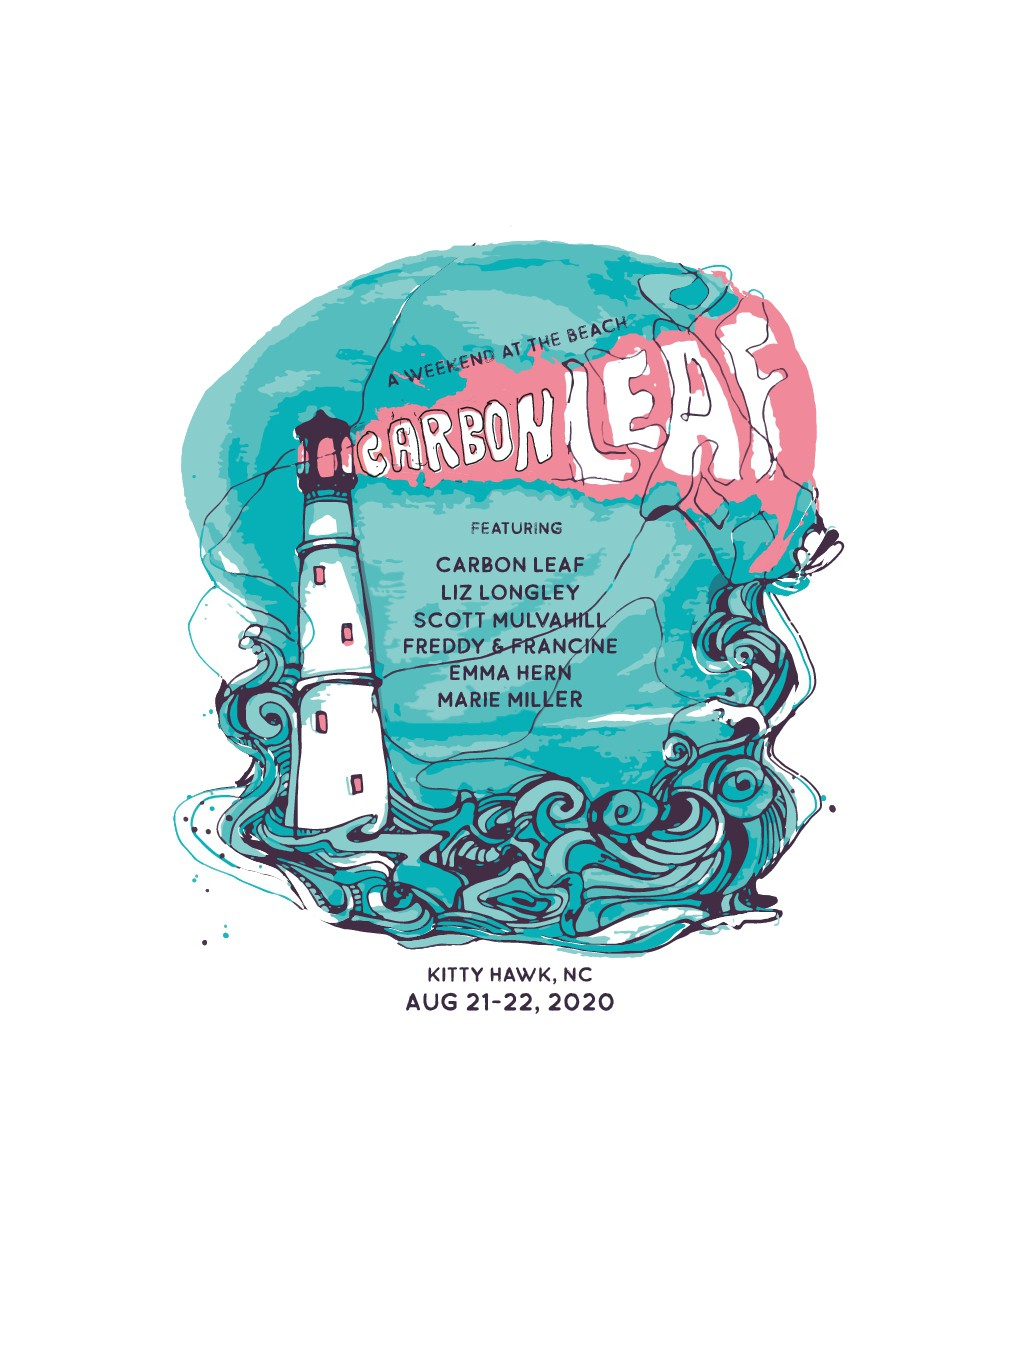 JAWS or LIGHTHOUSE: music fest branding images needed for beach event